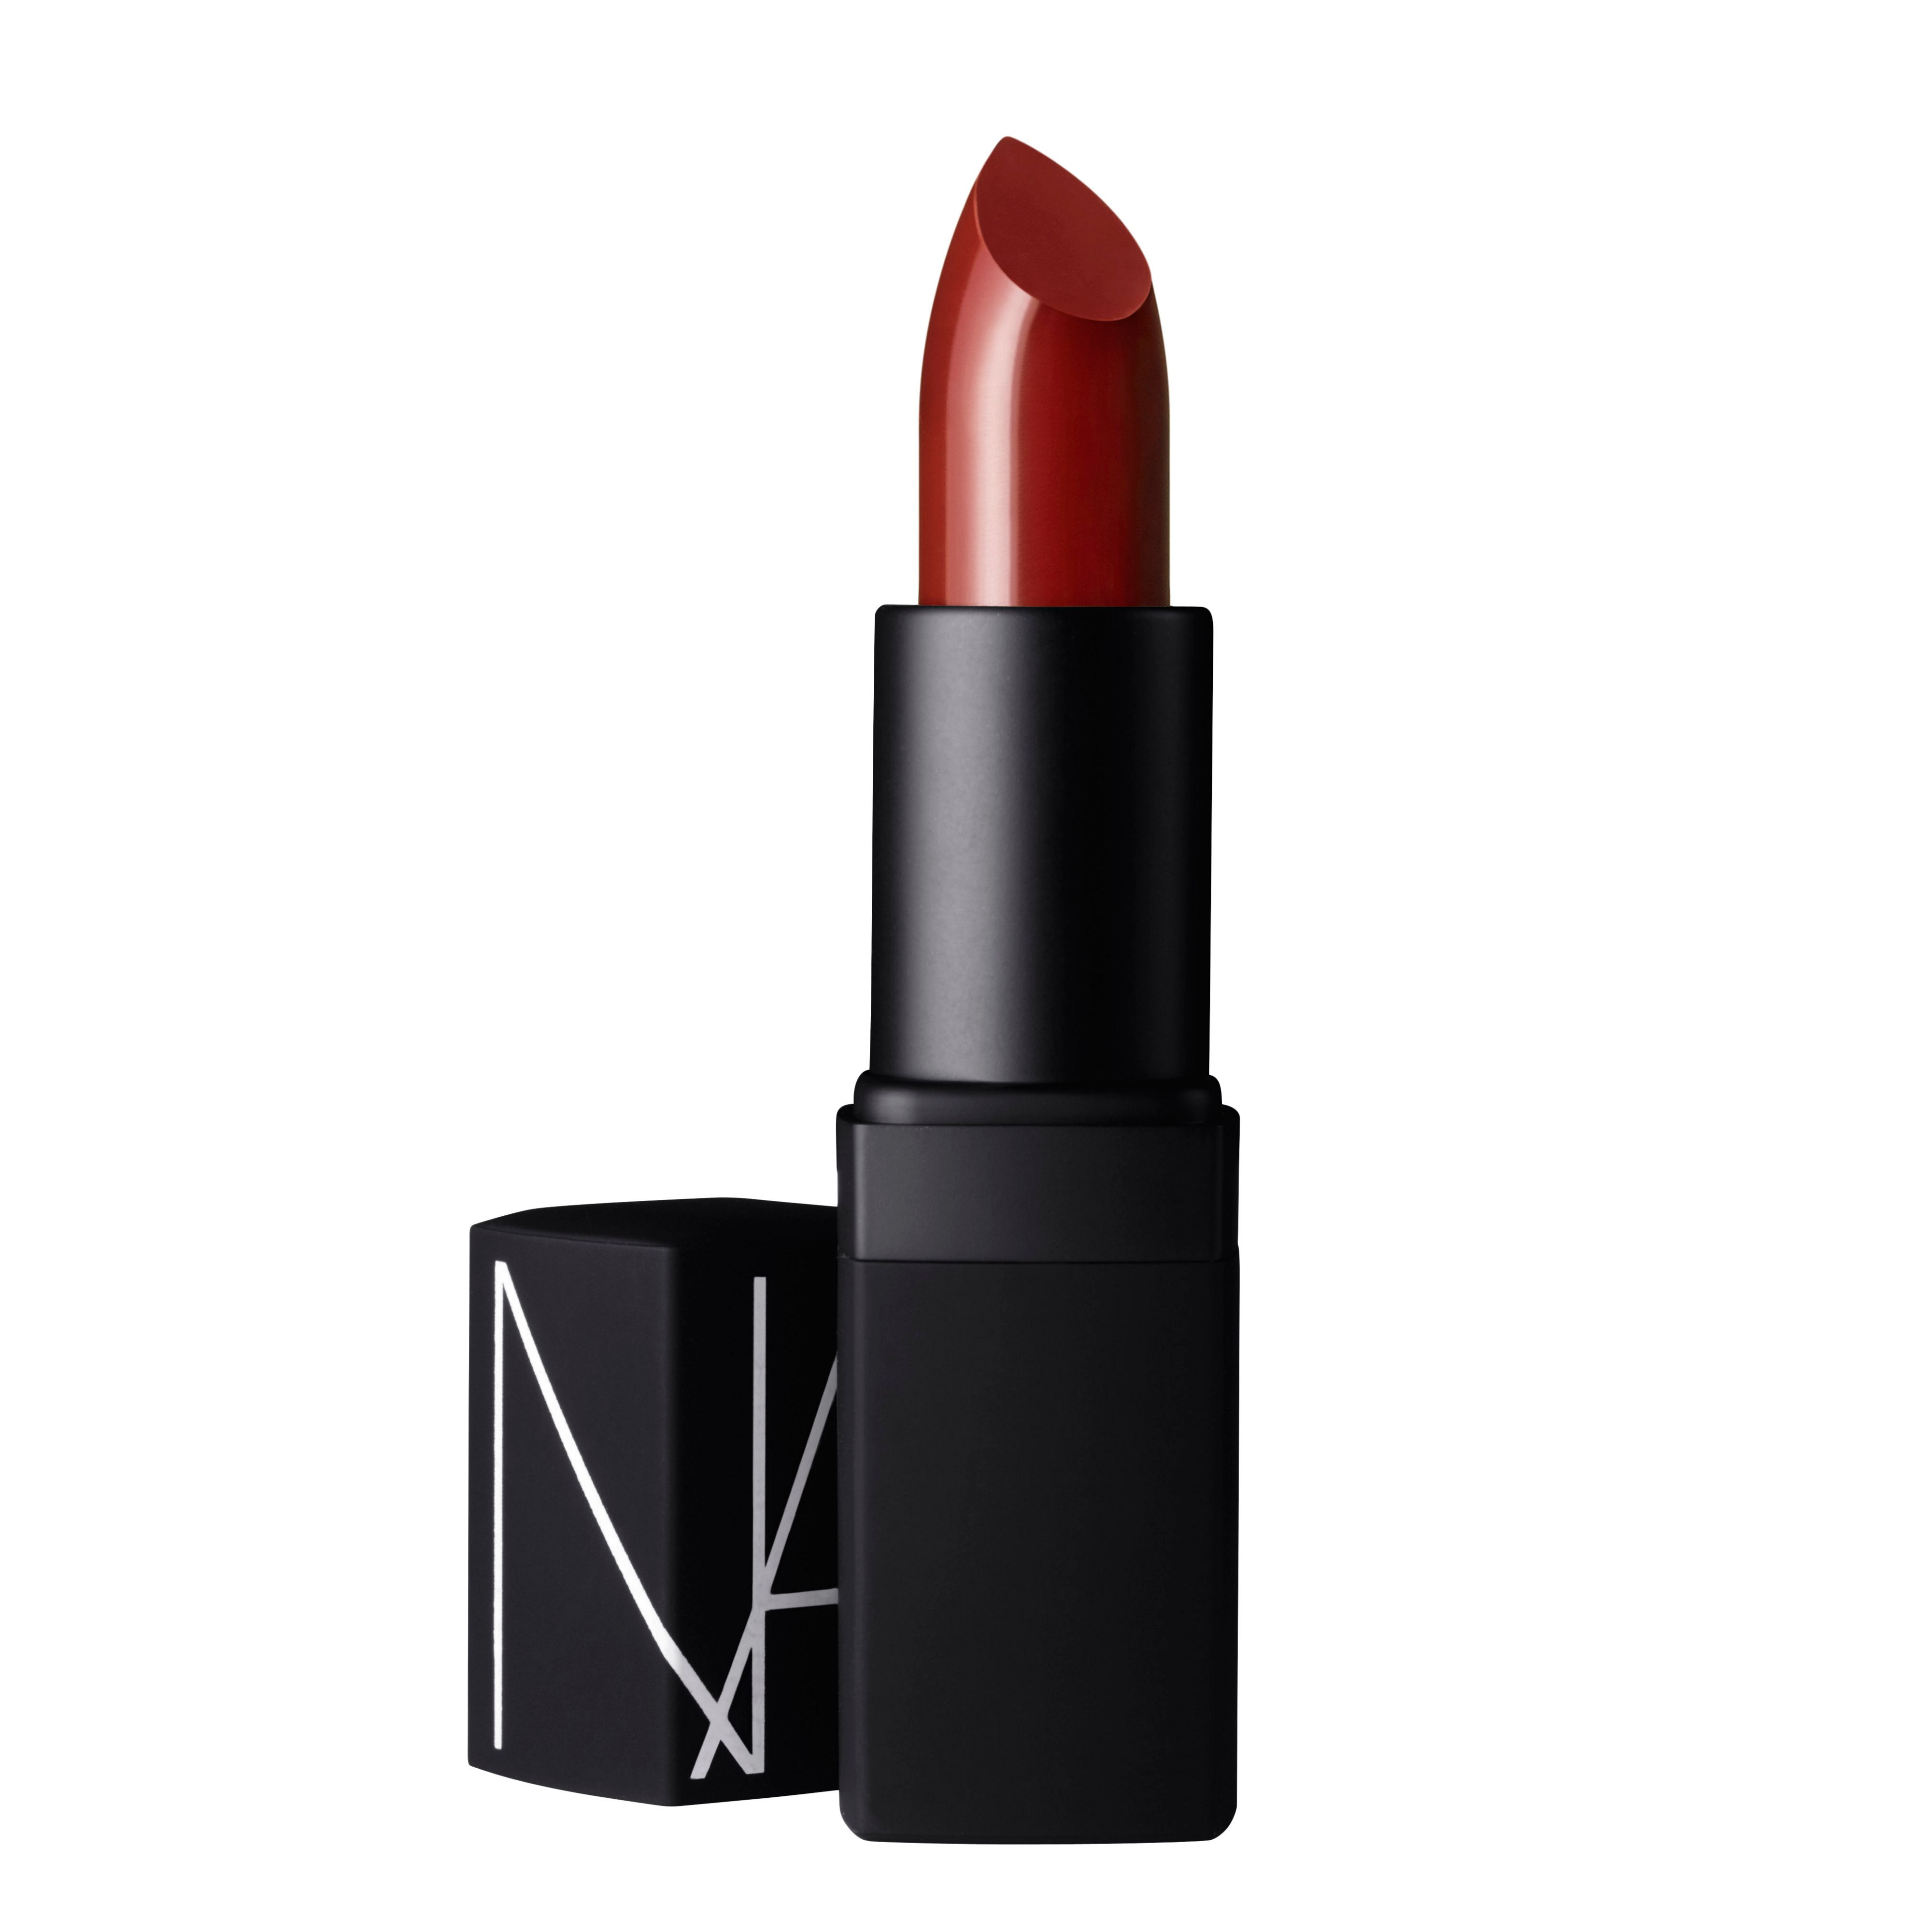 Nars Cosmetics Lipstick Rouge A Levres, Roman Holiday